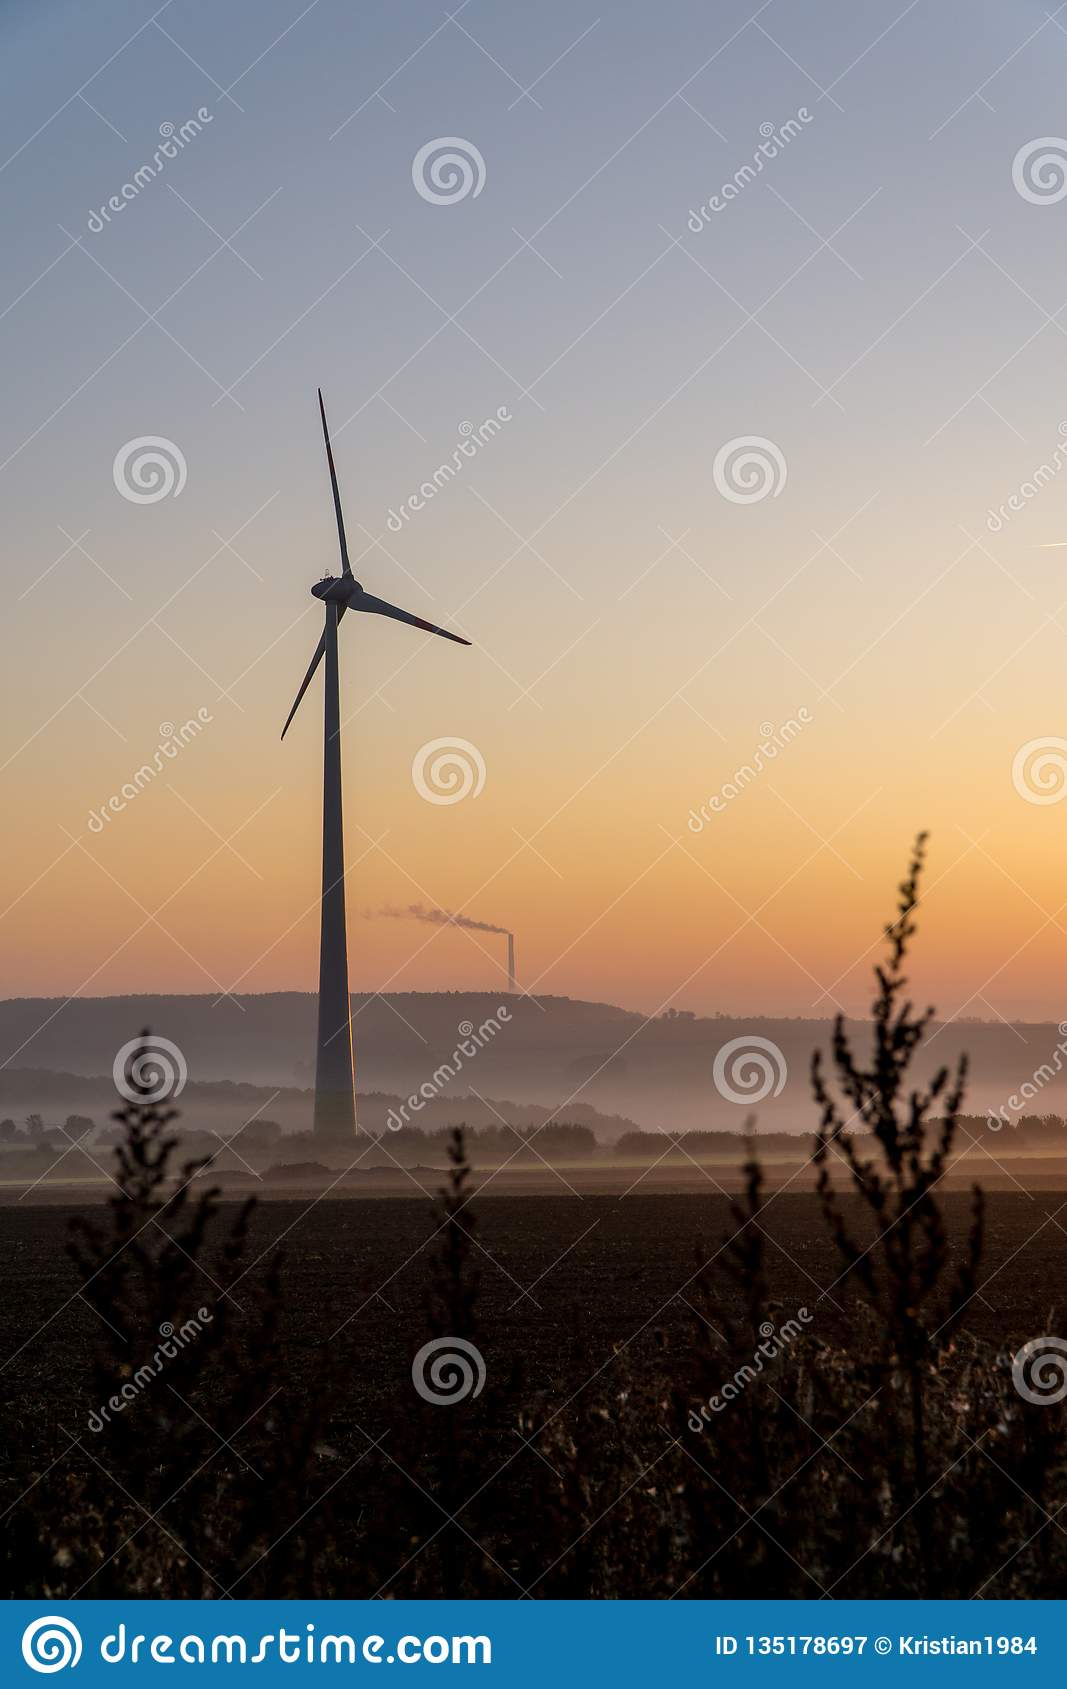 Wind turbines in the morning, partially covered by mist